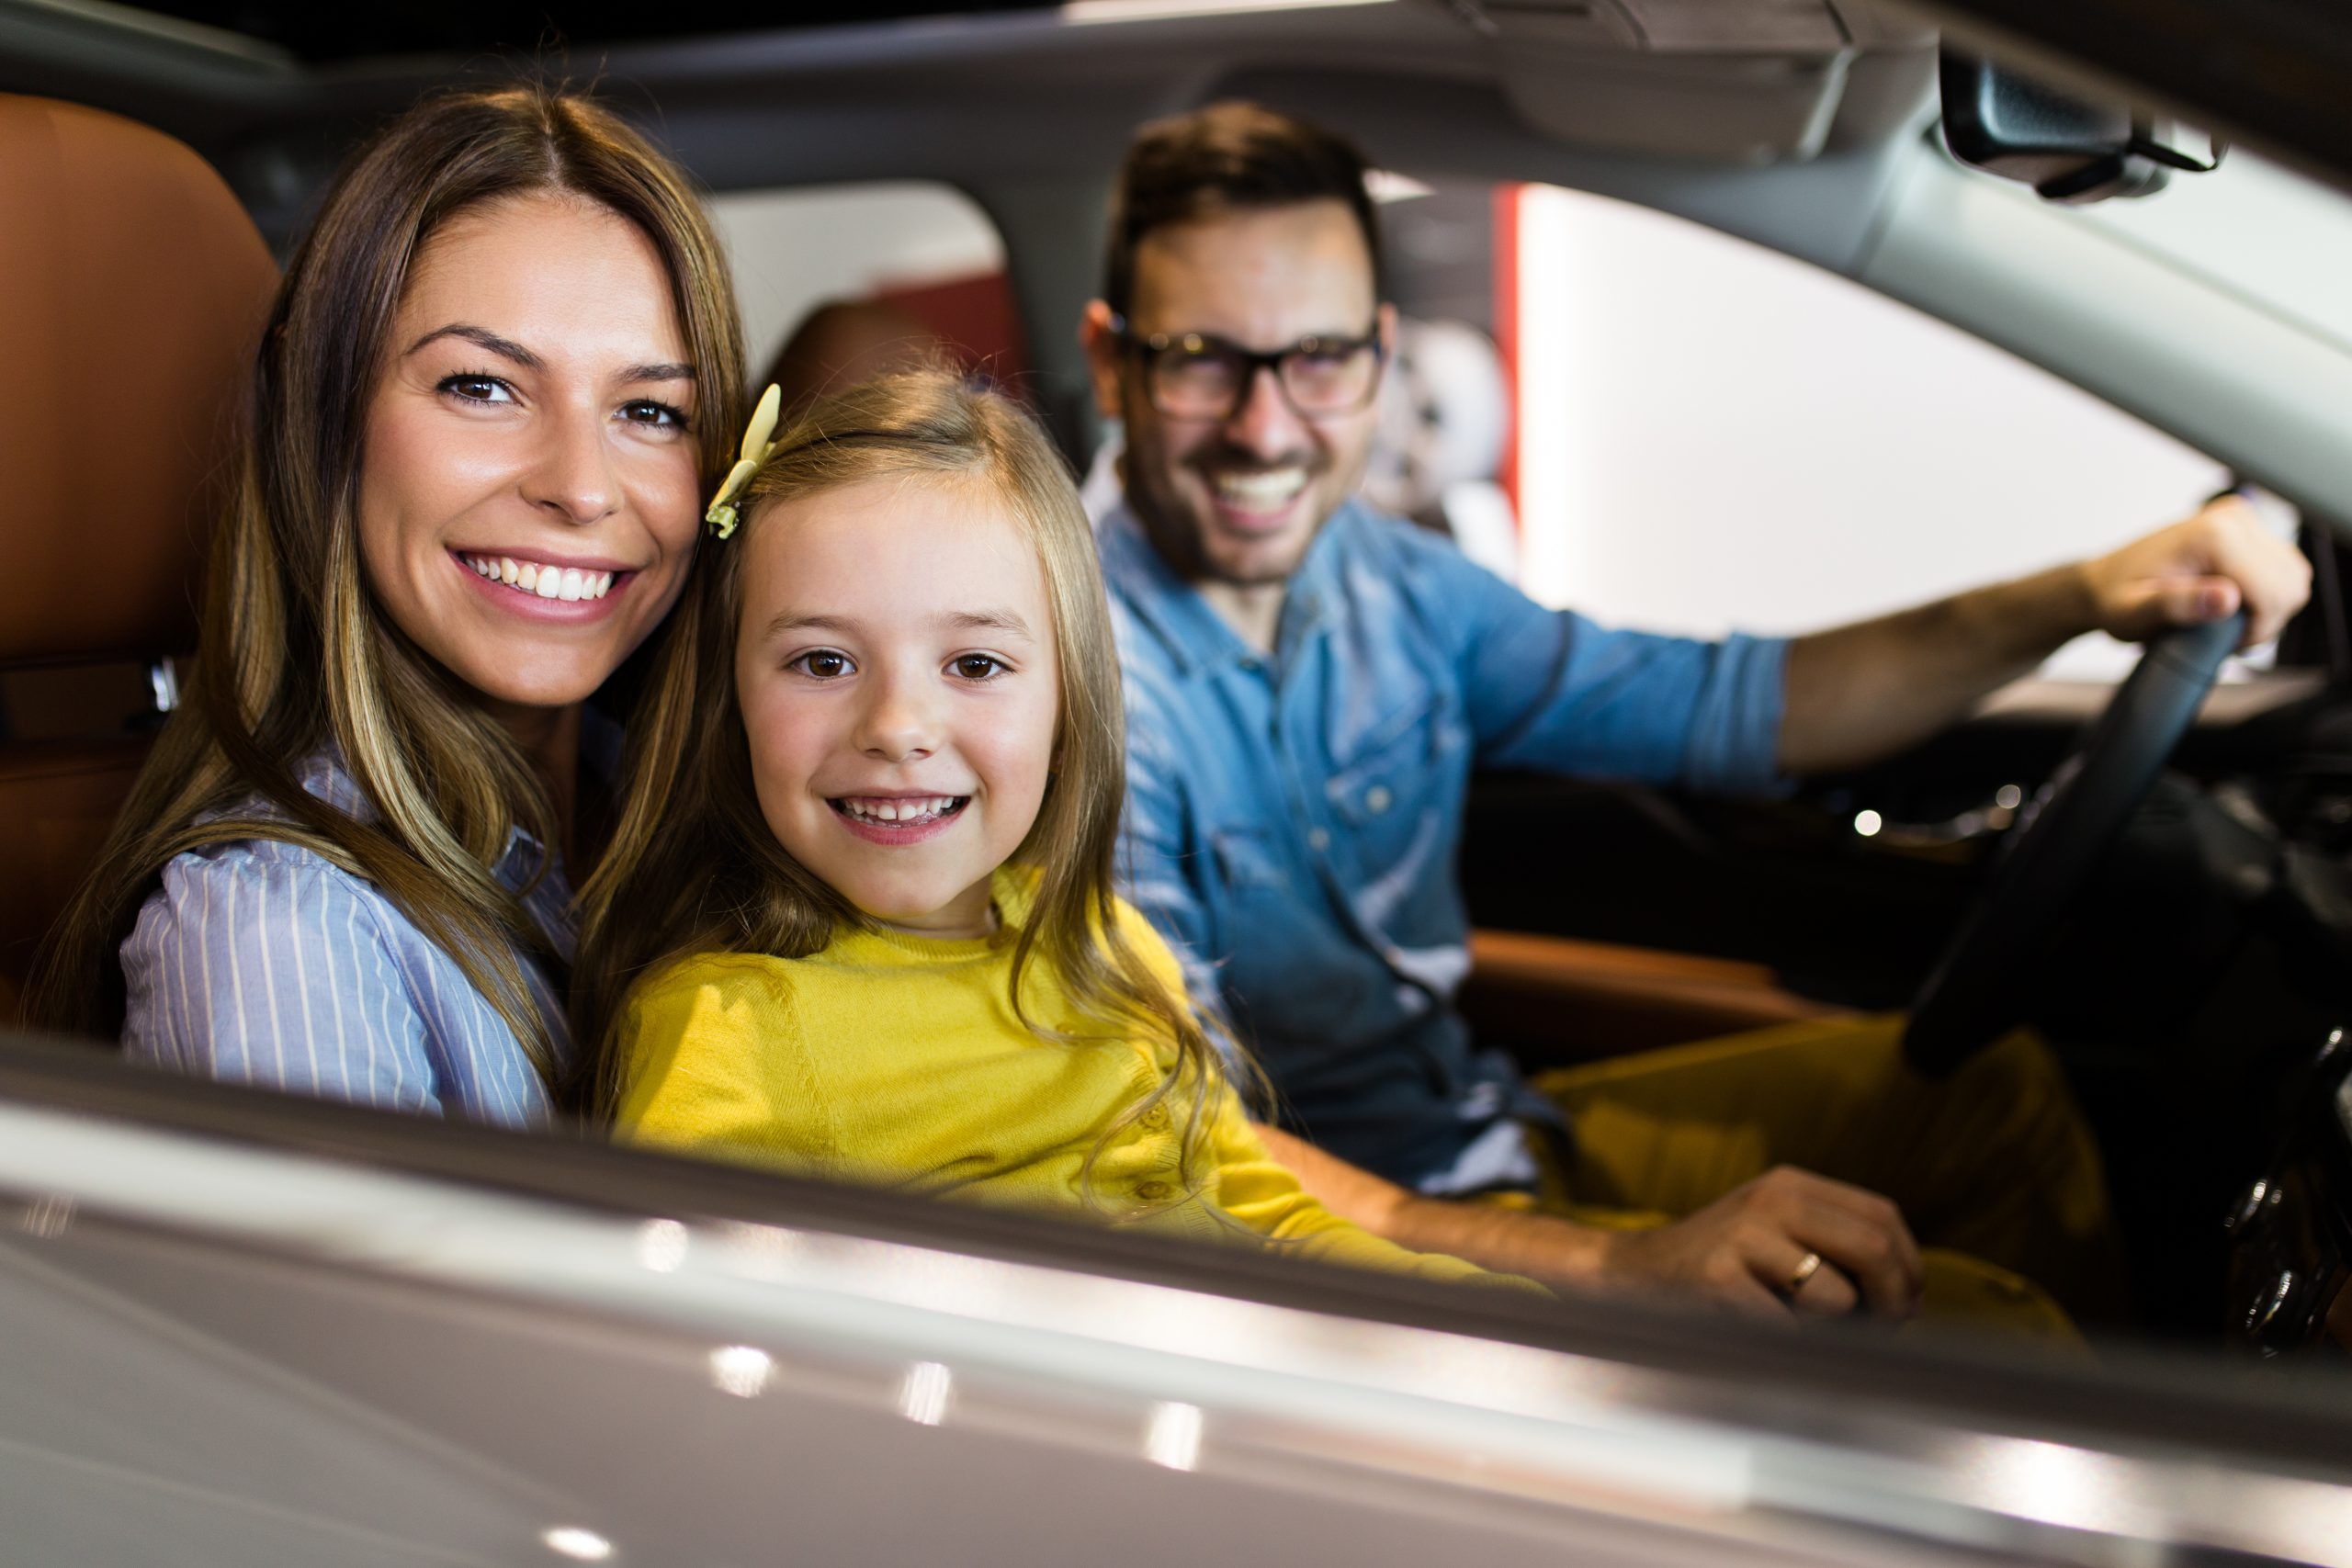 Buying A New Car In 2021? 8 Things To Know